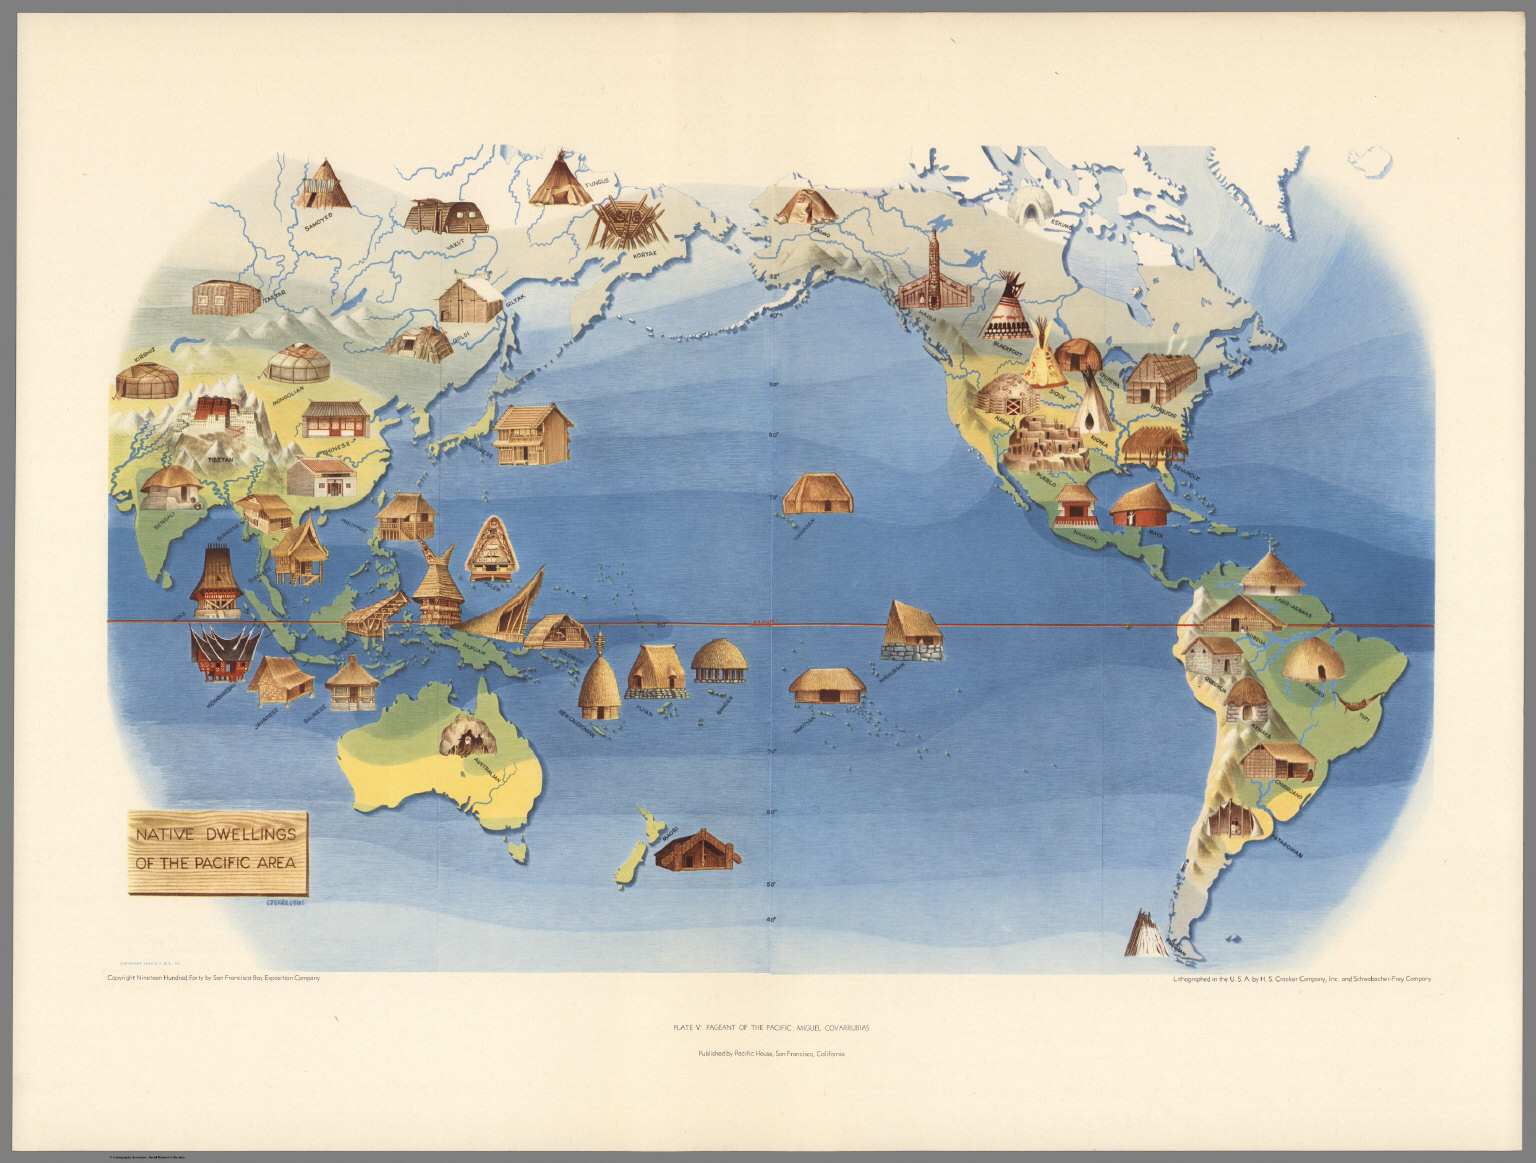 Pictorial Map: Native Dwellings of the Pacific